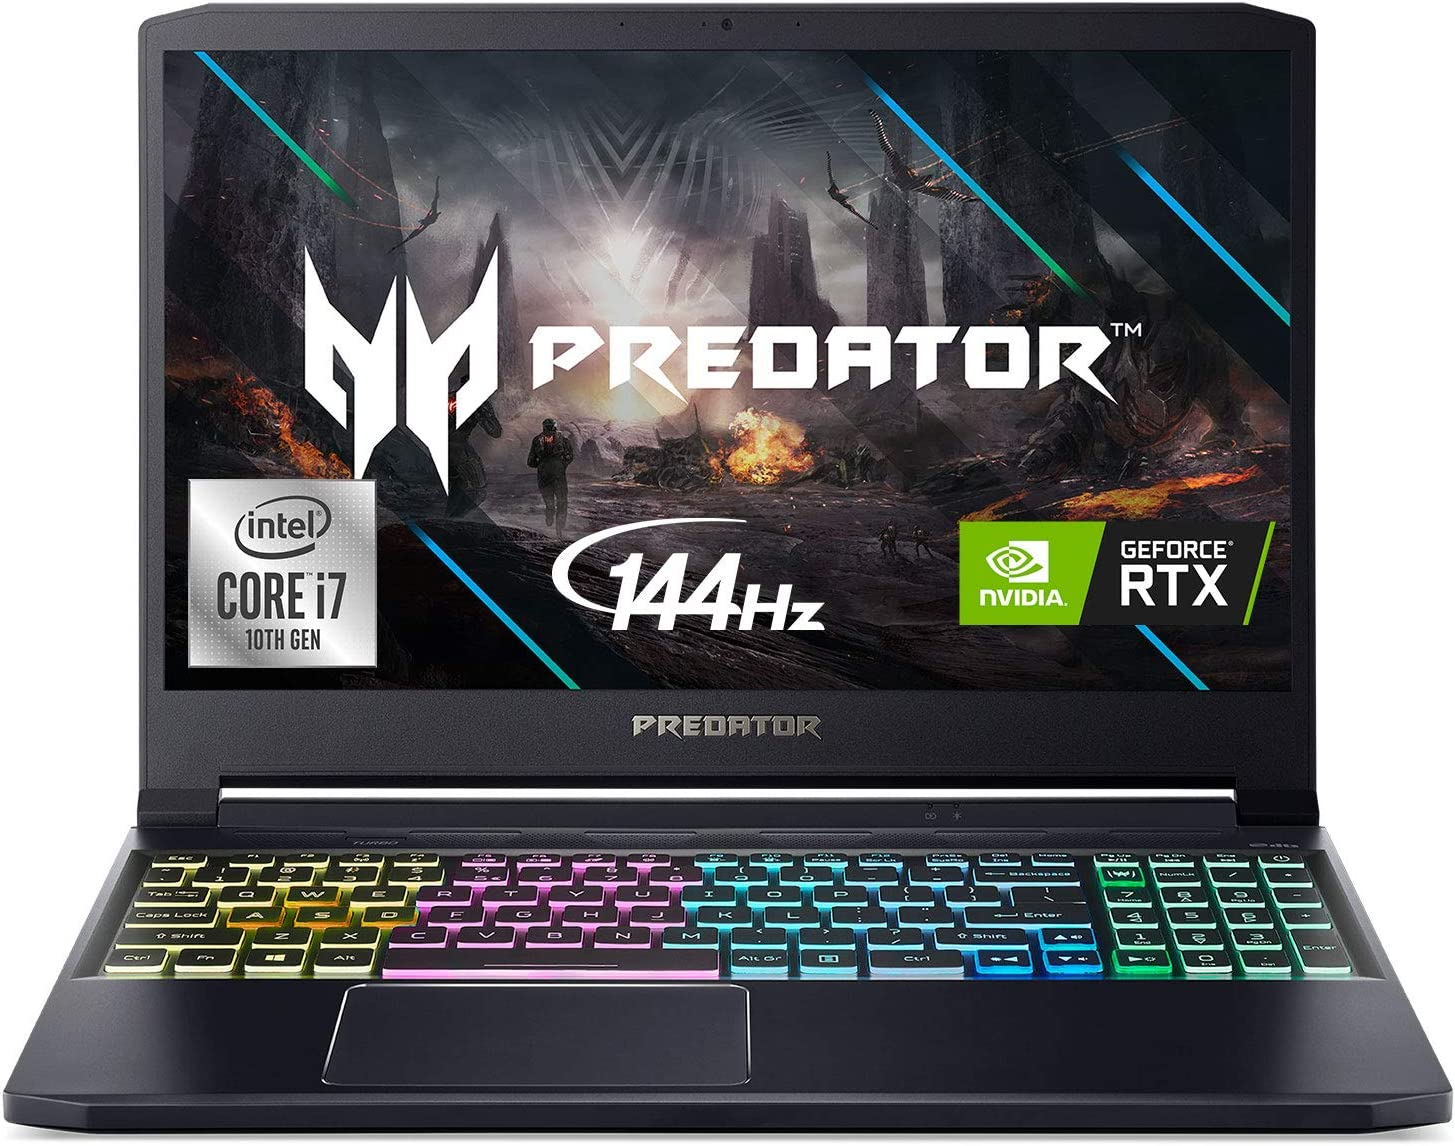 "Acer Predator Triton 300 Gaming Laptop, Intel i7-10750H, NVIDIA GeForce RTX 2060, 15.6"" Full HD IPS 144Hz 3ms IPS Display, 16GB Dual-Channel DDR4, 1TB NVMe SSD, WiFi 6, RGB Backlit KB, PT315-52-78W1"